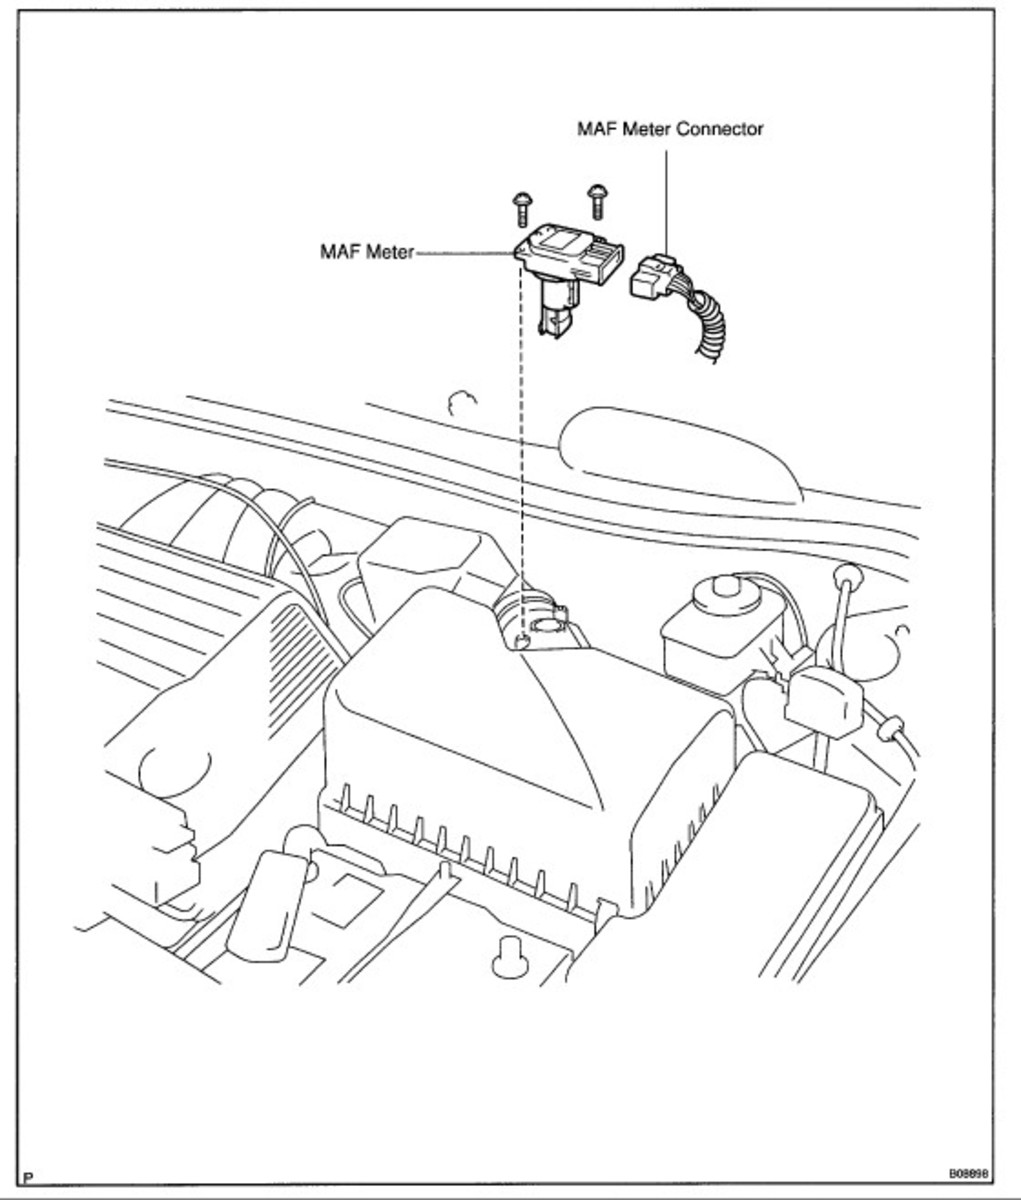 Accord Knock Sensor Location On 96 Accord Fuel Pump Wiring Diagram